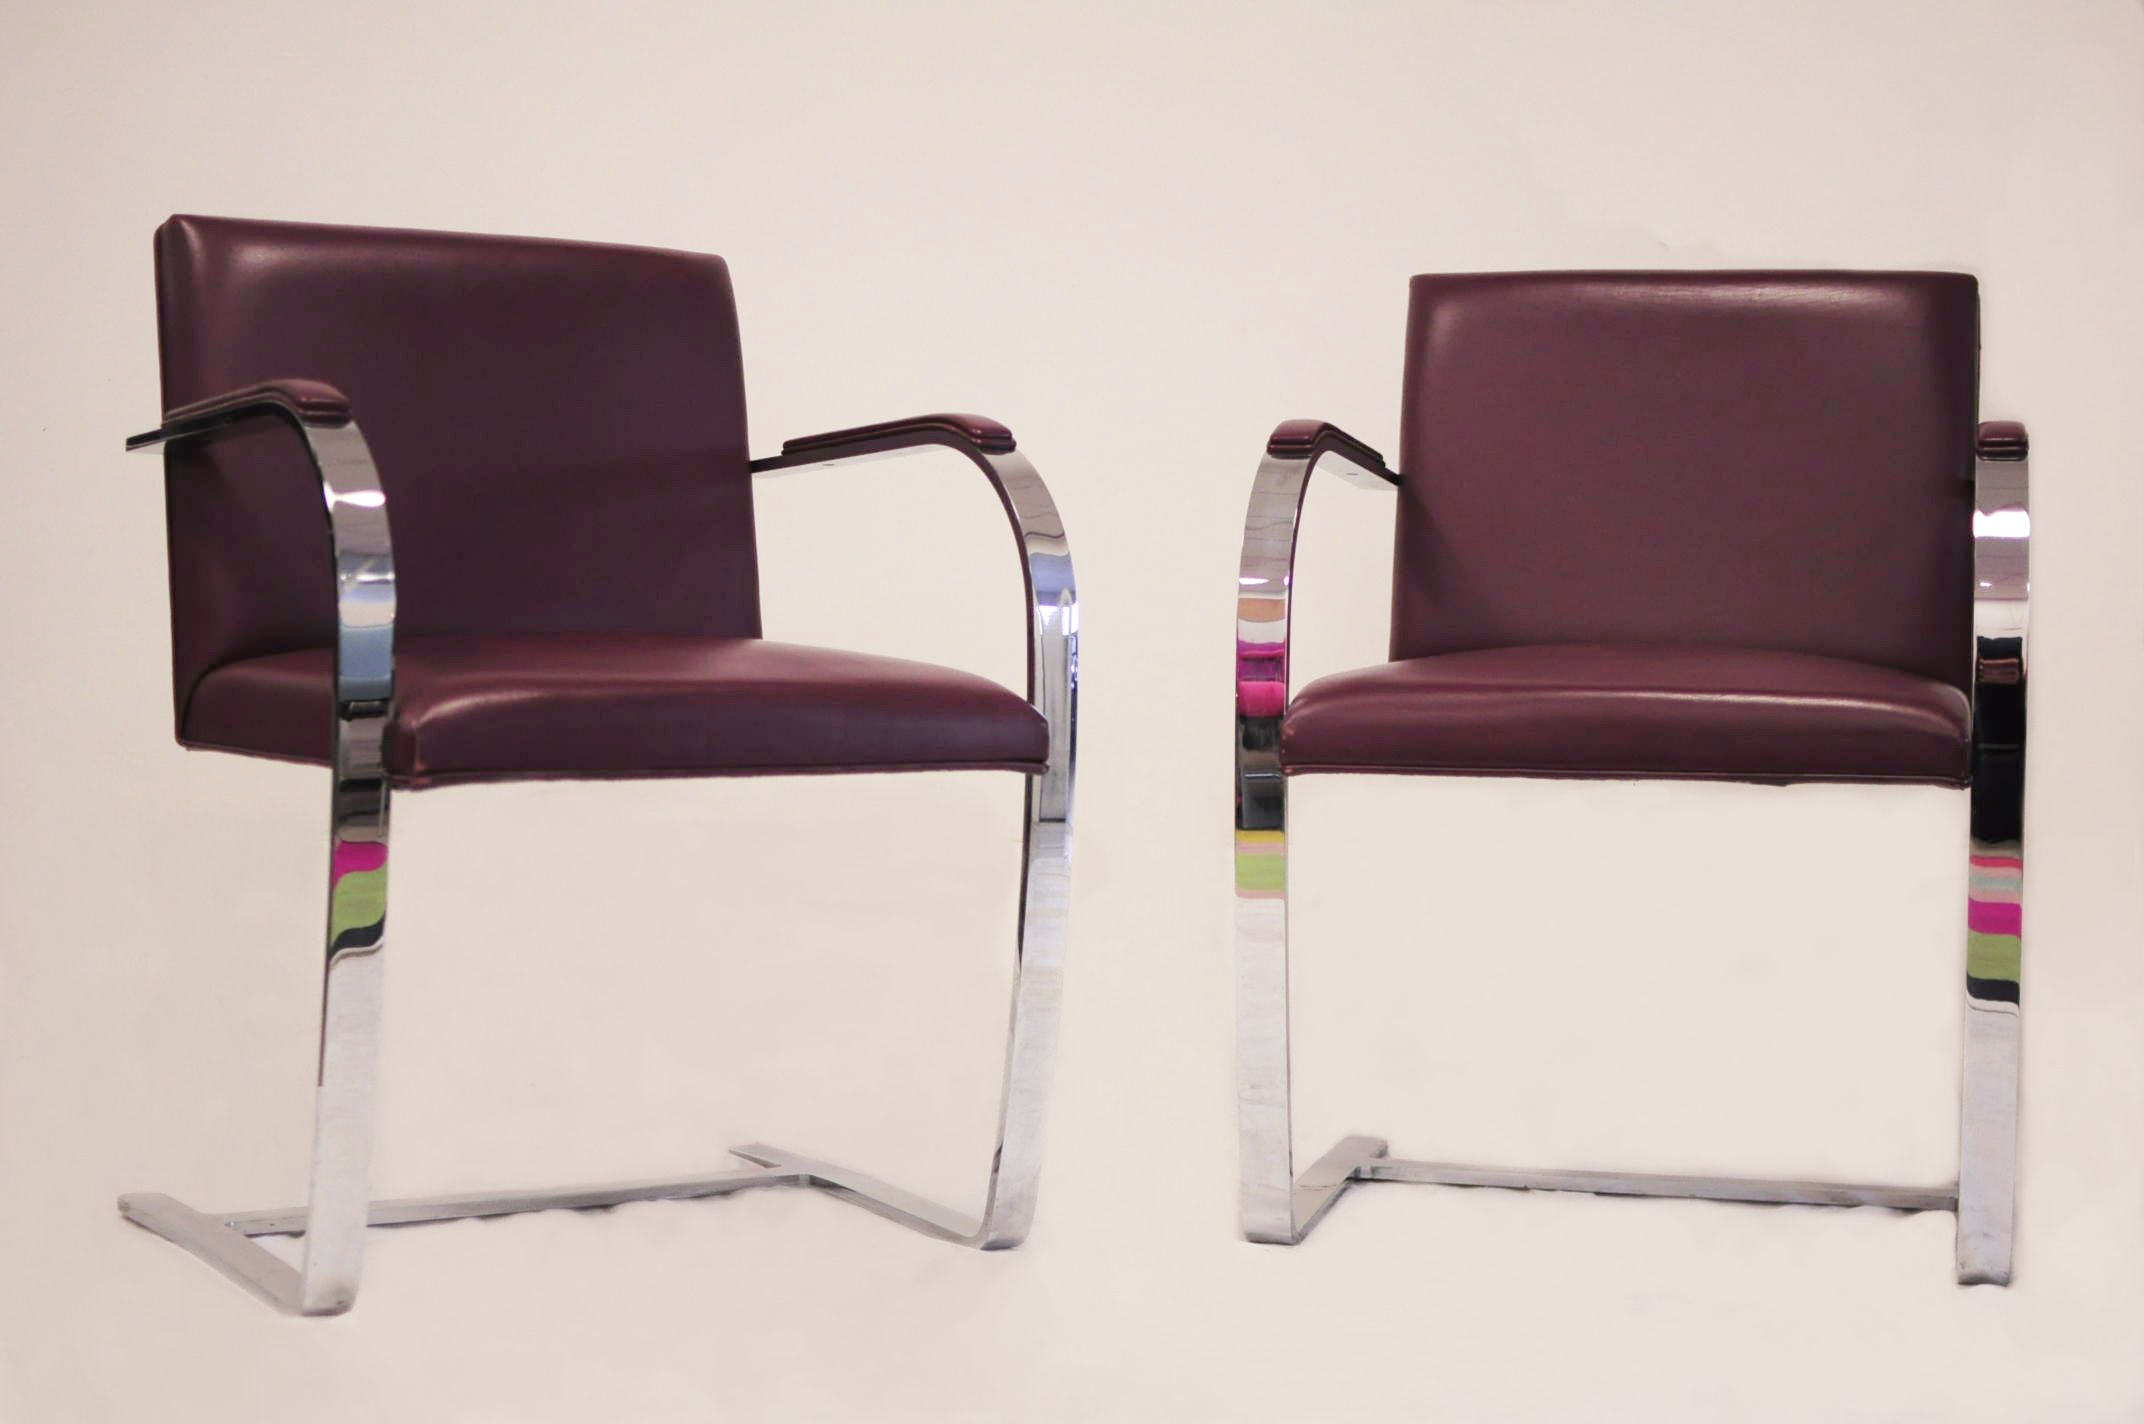 Chaise Brno Mies Van Der Rohe vintage brno armchairmies van der rohe for knoll in burgundy leather